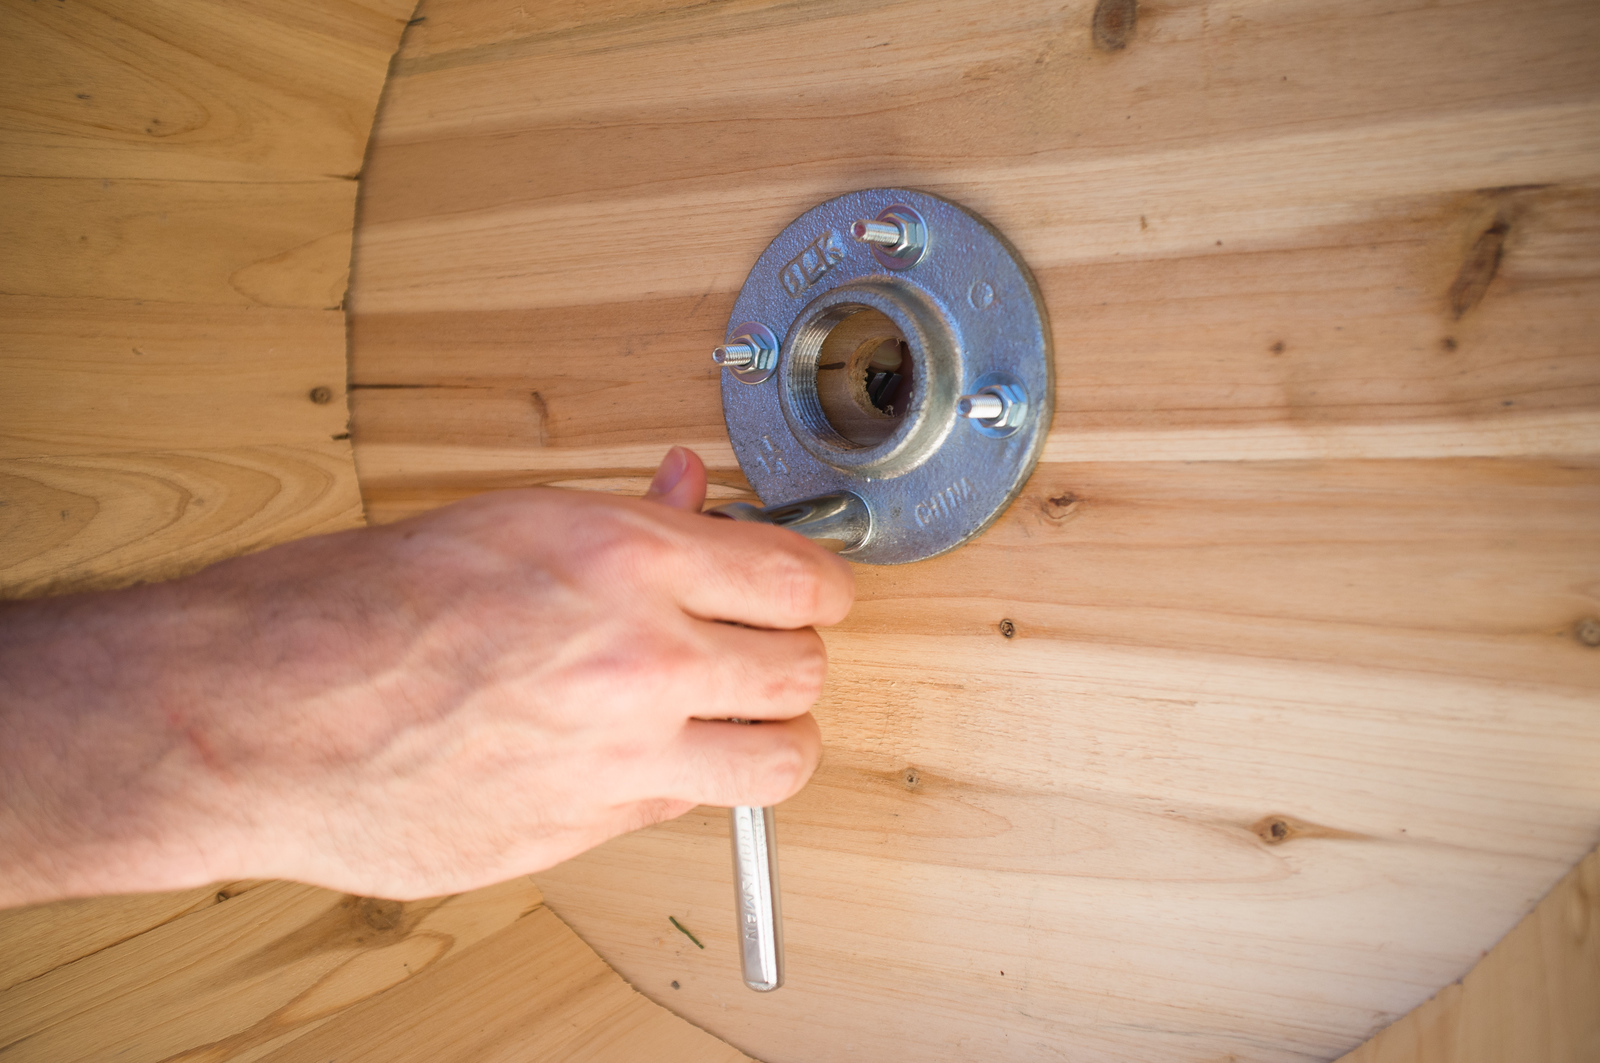 Use a socket wrench to tighten each nut